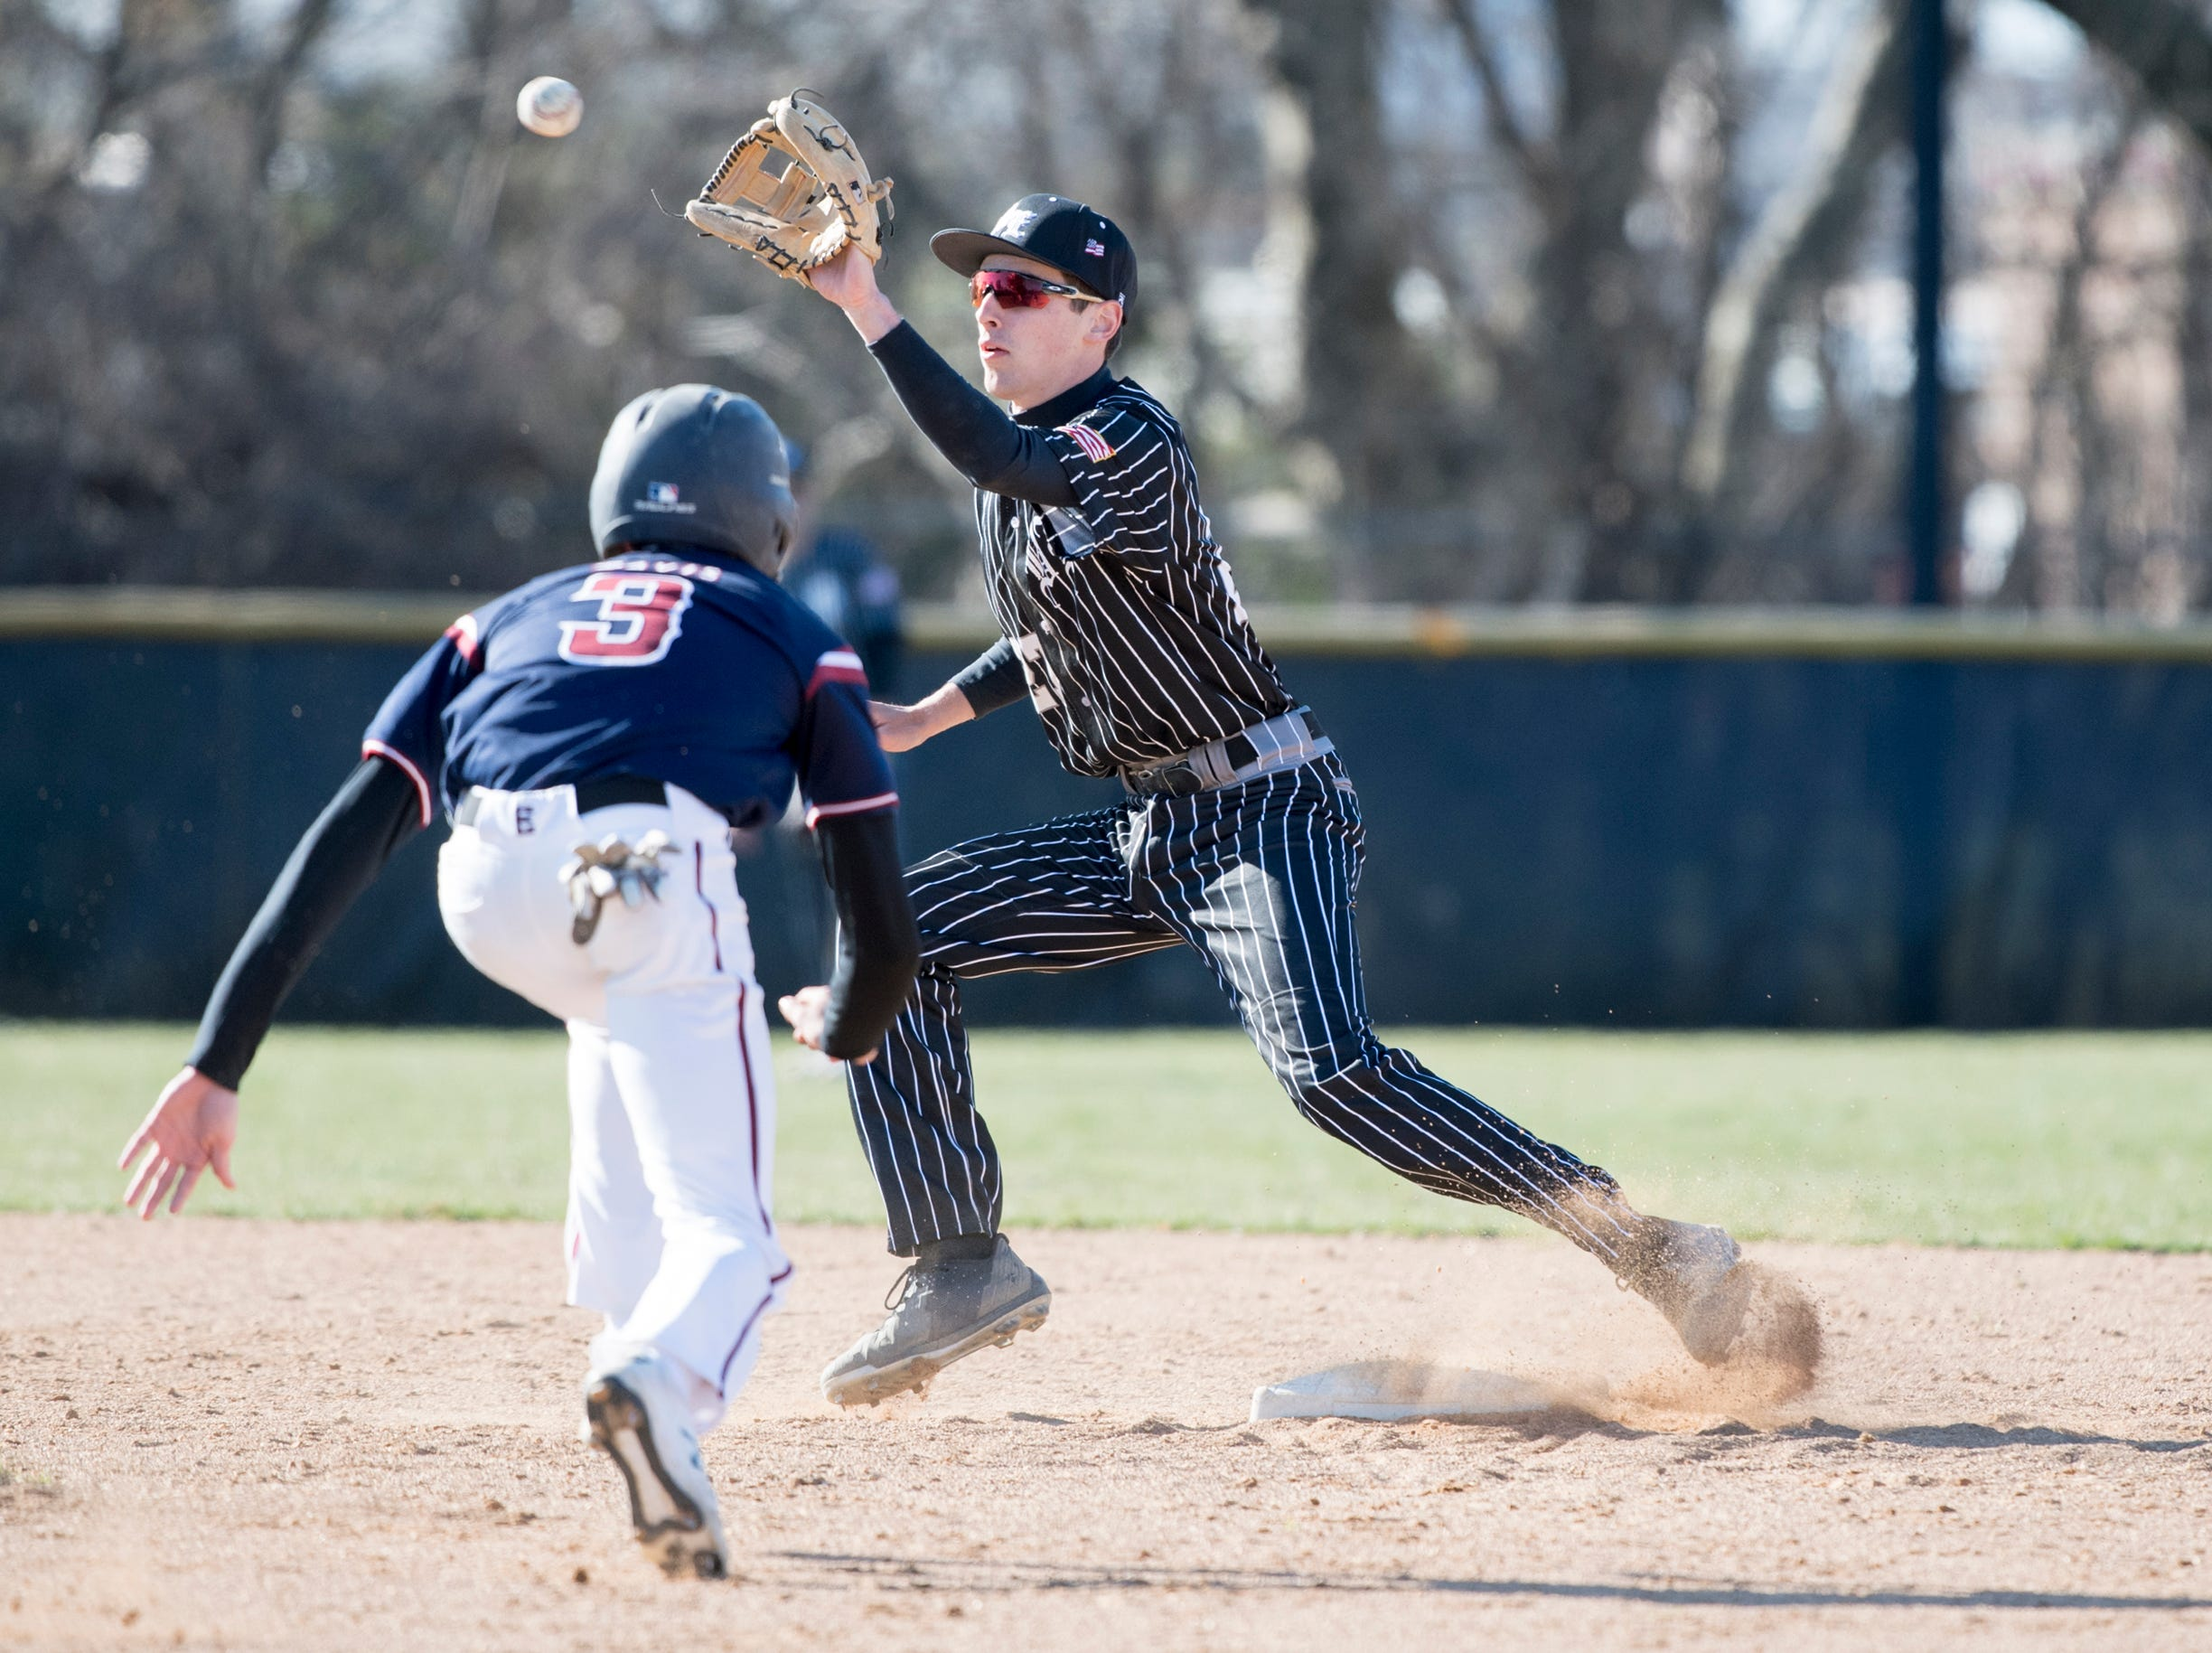 Bishop Eustace's Eric Sabato (27) tags out Eastern's Zach Davis (3) Monday, April 1, 2019 in Pennsauken. Eustace won 12-0.